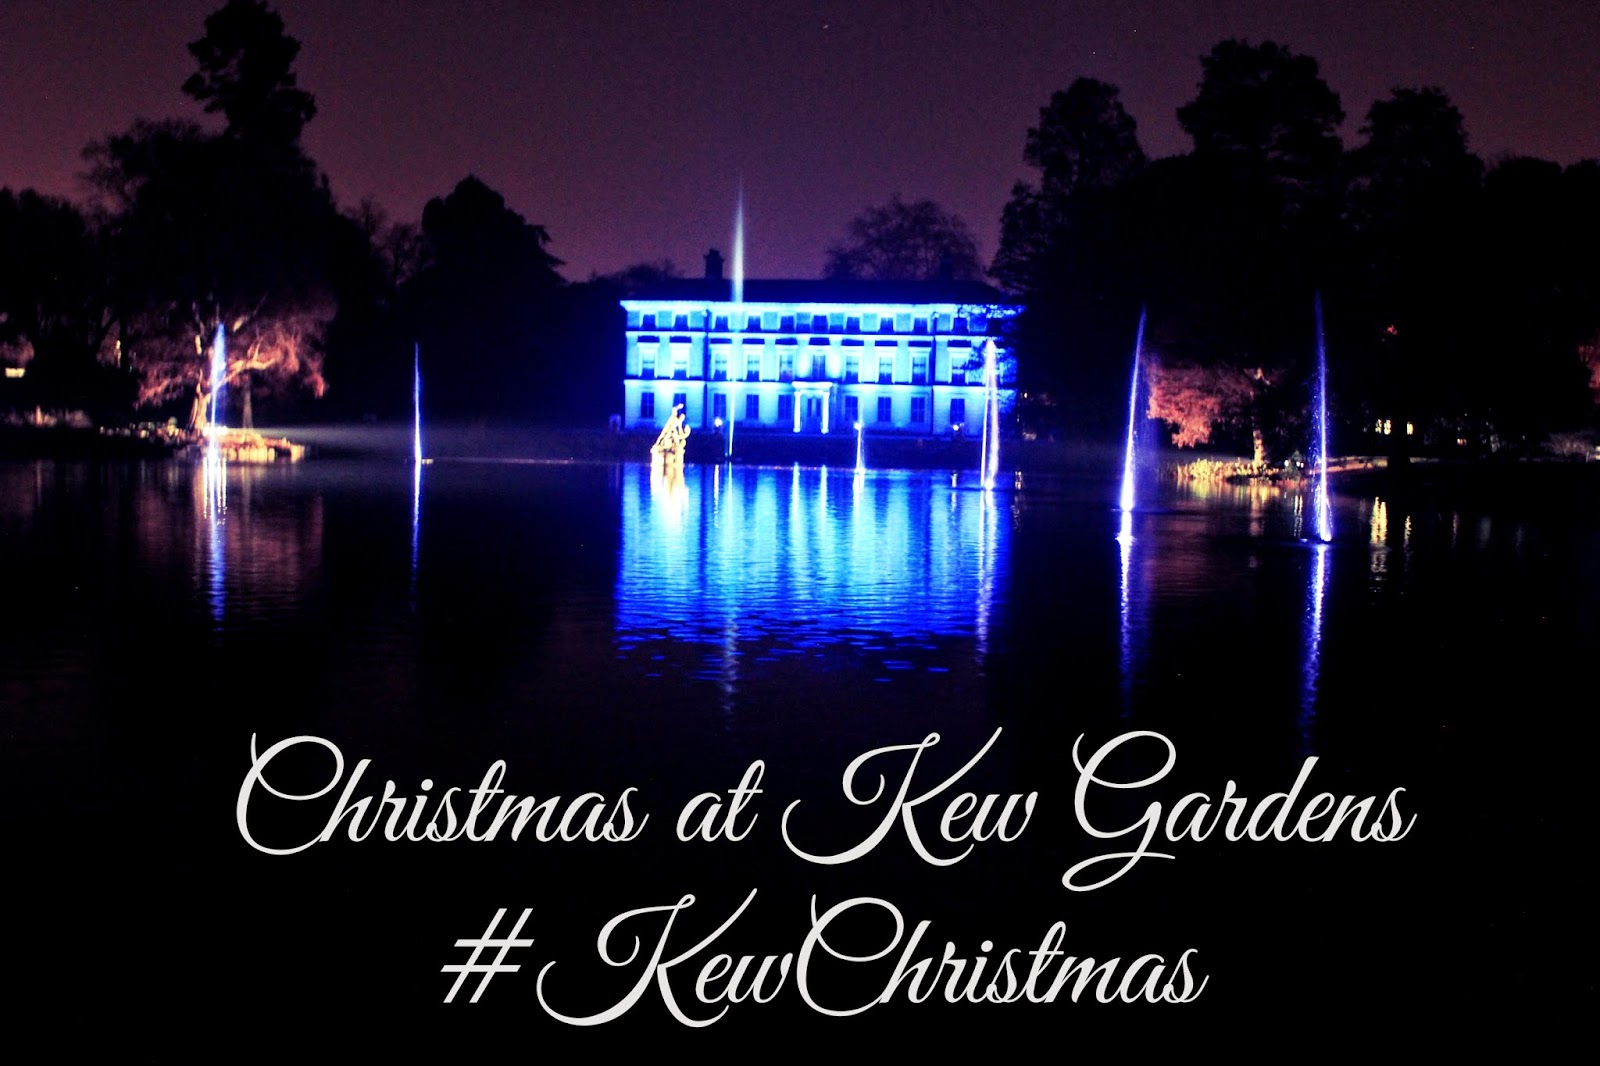 Christmas at Kew Gardens #KewChristmas